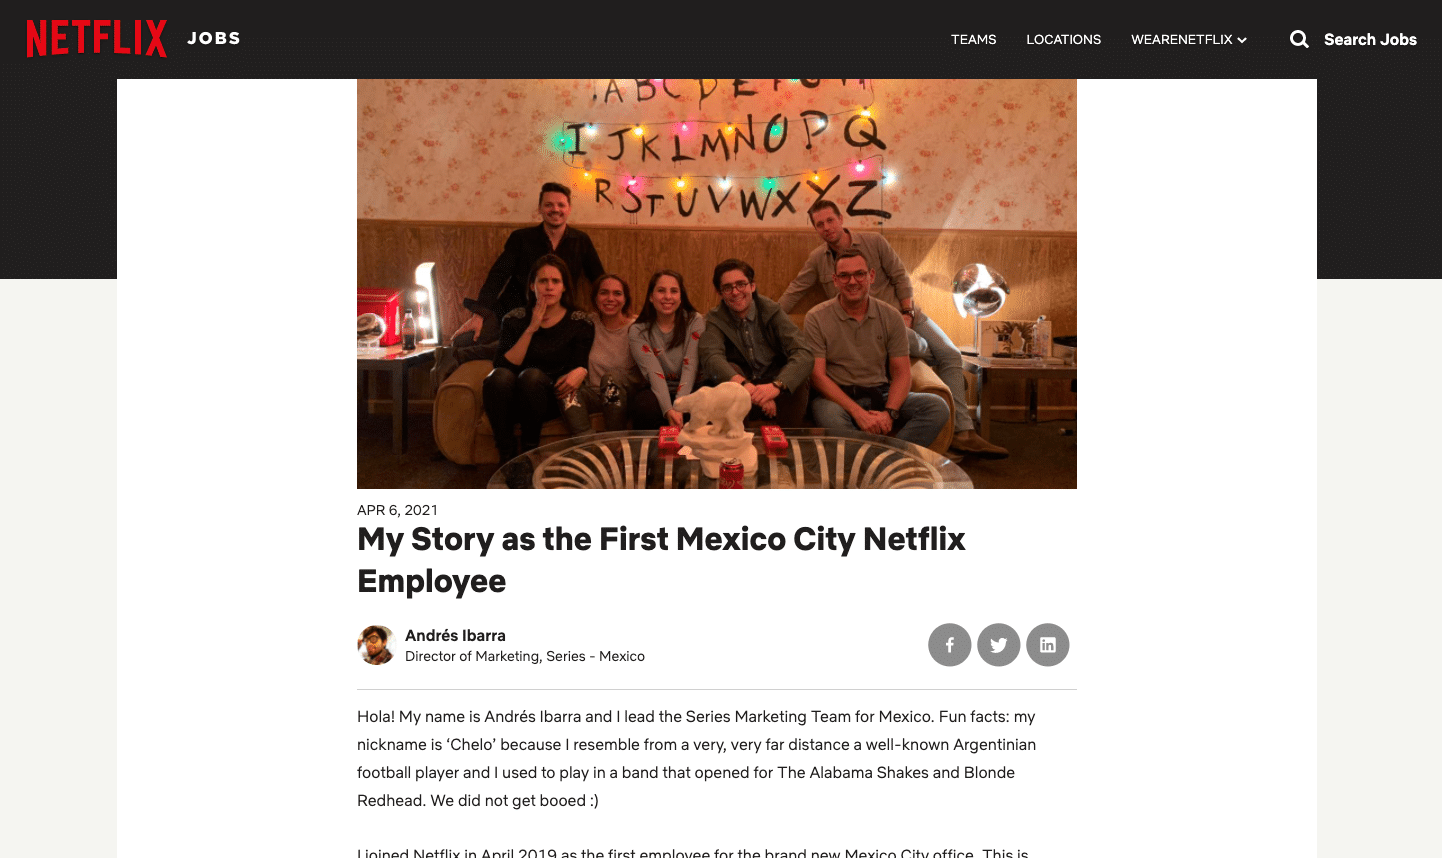 An blog post from netflix's first employee in mexico city